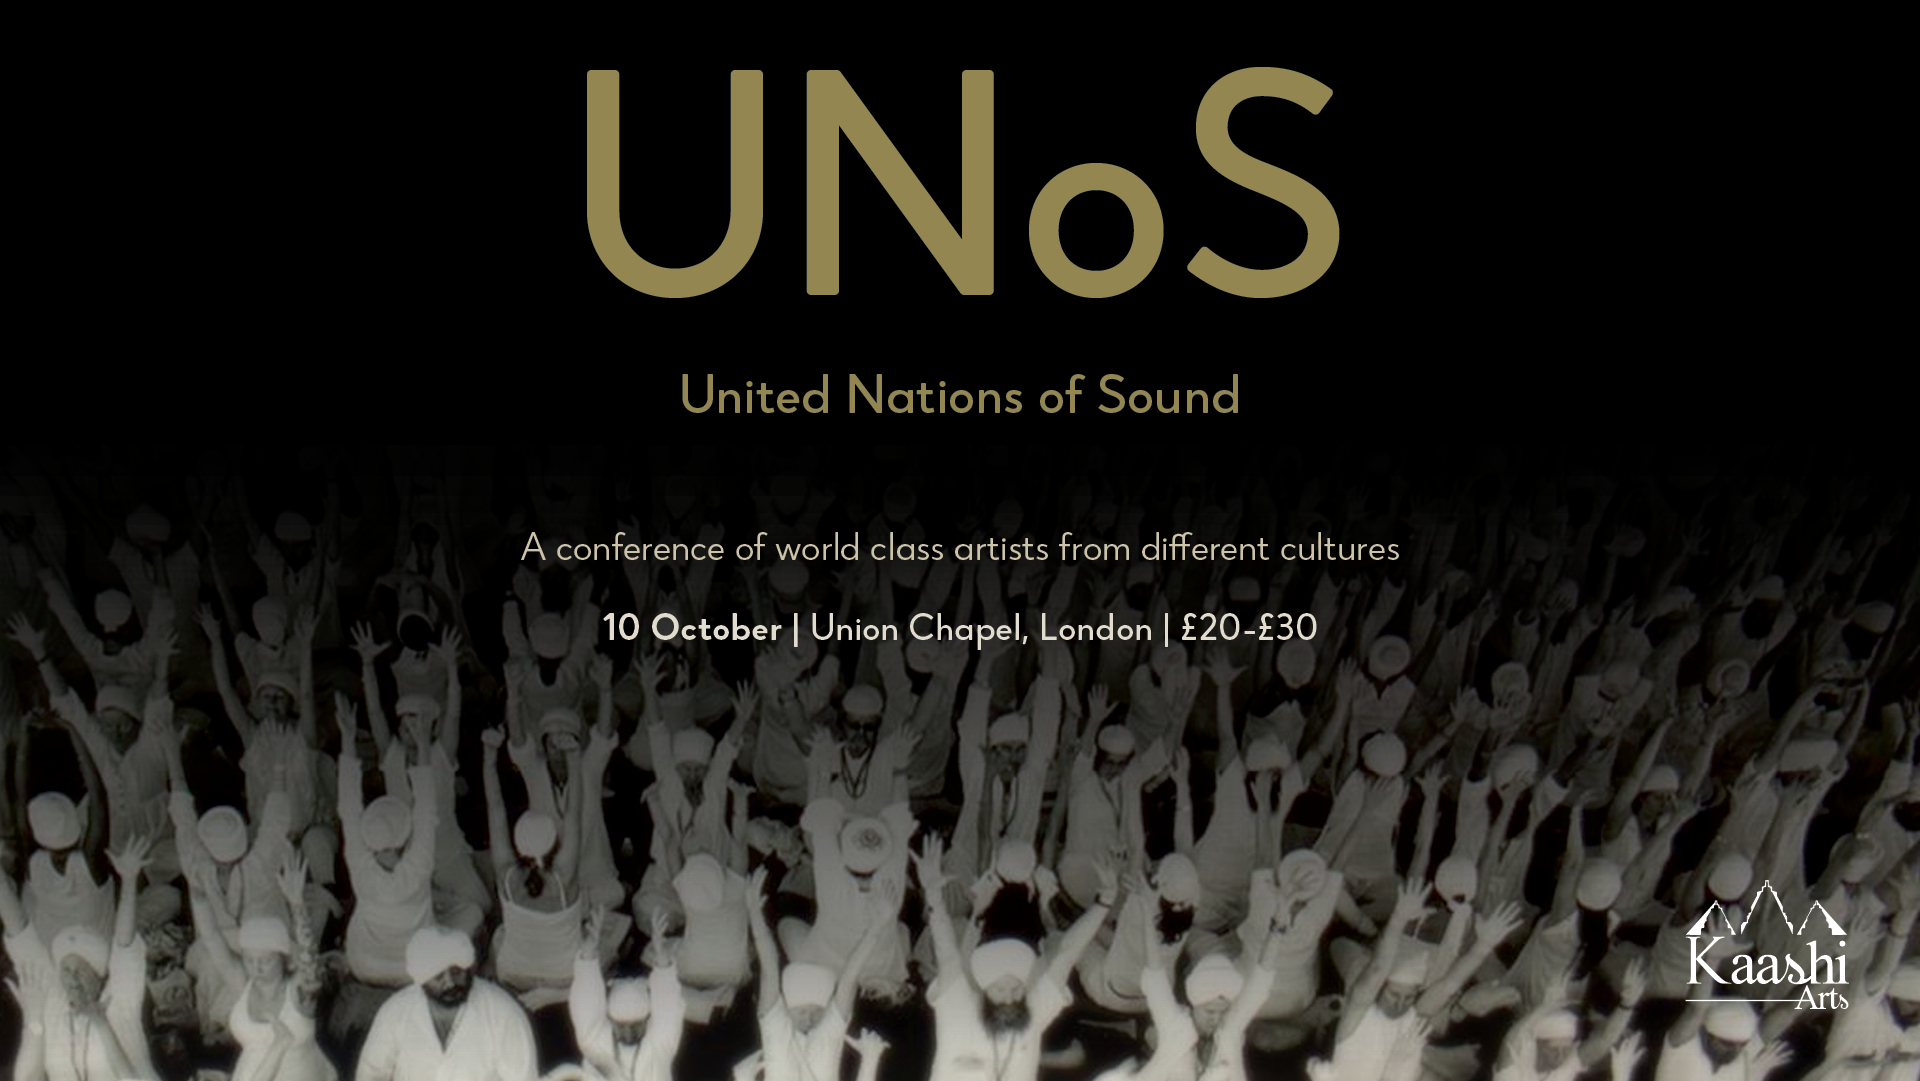 United Nations of Sound (UNoS)  | Union Chapel, London | October 2019  UNoS explores cultural interconnectedness; how we can all be united by music. Music binds us all. Music is present in our accents. Music is present in our language, our bodies; our very constitution is a bondage of vibrations. UNoS is a conference of musical differences. It is a discussion about humanity. These world class artists of varying backgrounds share a common ground. Mother earth and her mother tongue - Music.  Artists Nicki Wells (Vocal), Pandit Sanju Sahai (Tabla), Danny Keane (Cello), Beibei Wang (Multi Percussion), Loris Lombardo (Hang drum)